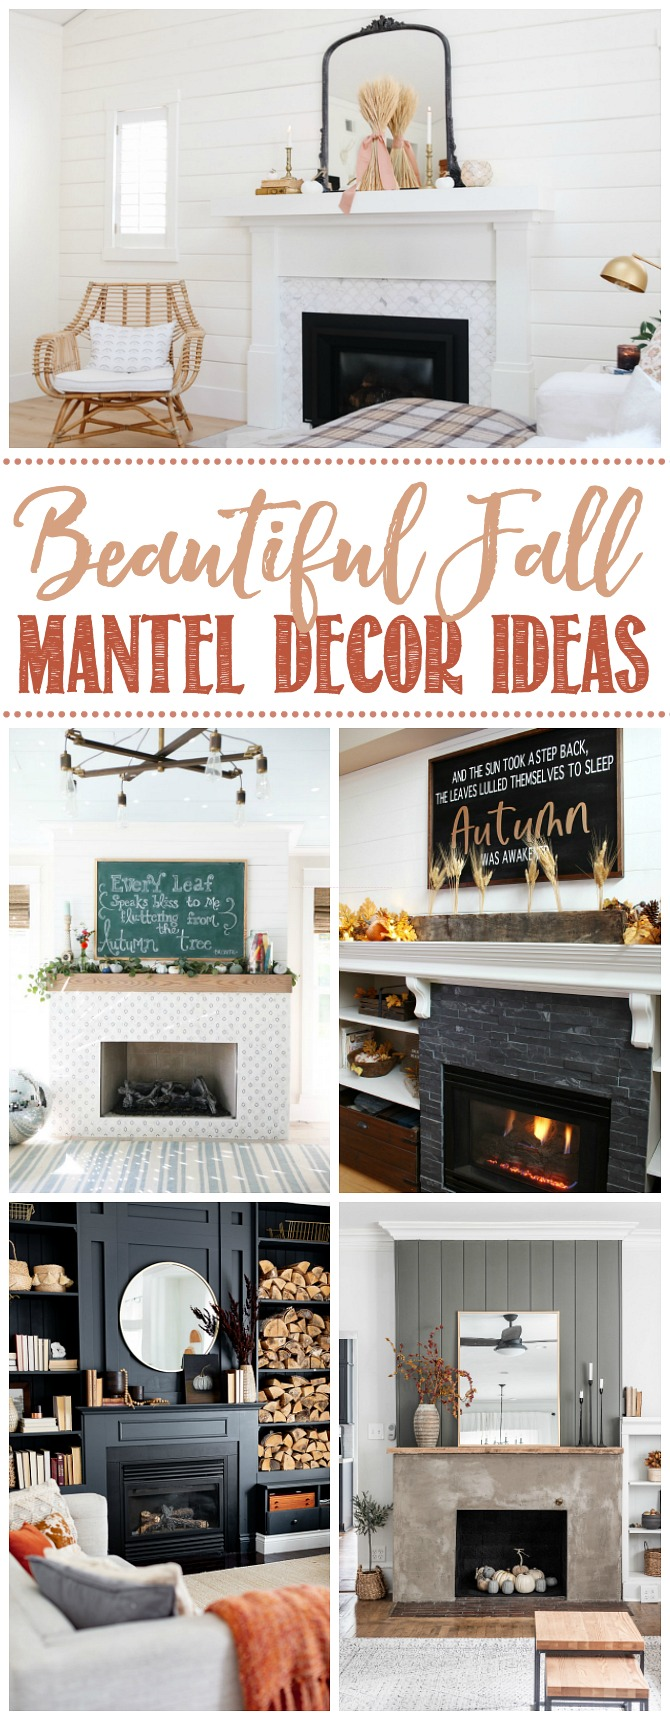 Beautiful collage of mantels decorated for fall.